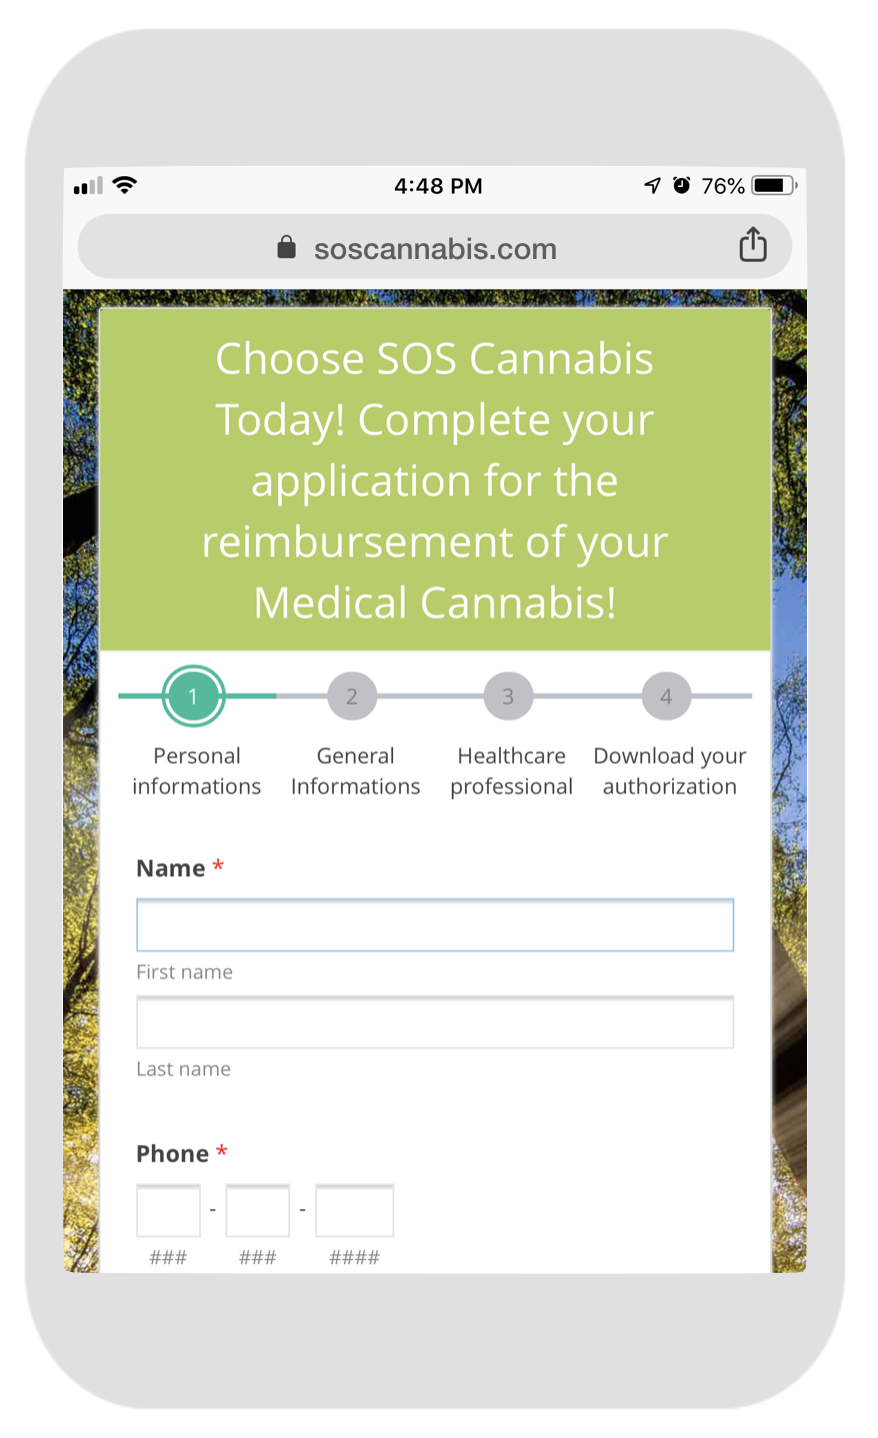 sos-cannabis-medical-3-steps-to-submit-applications.png